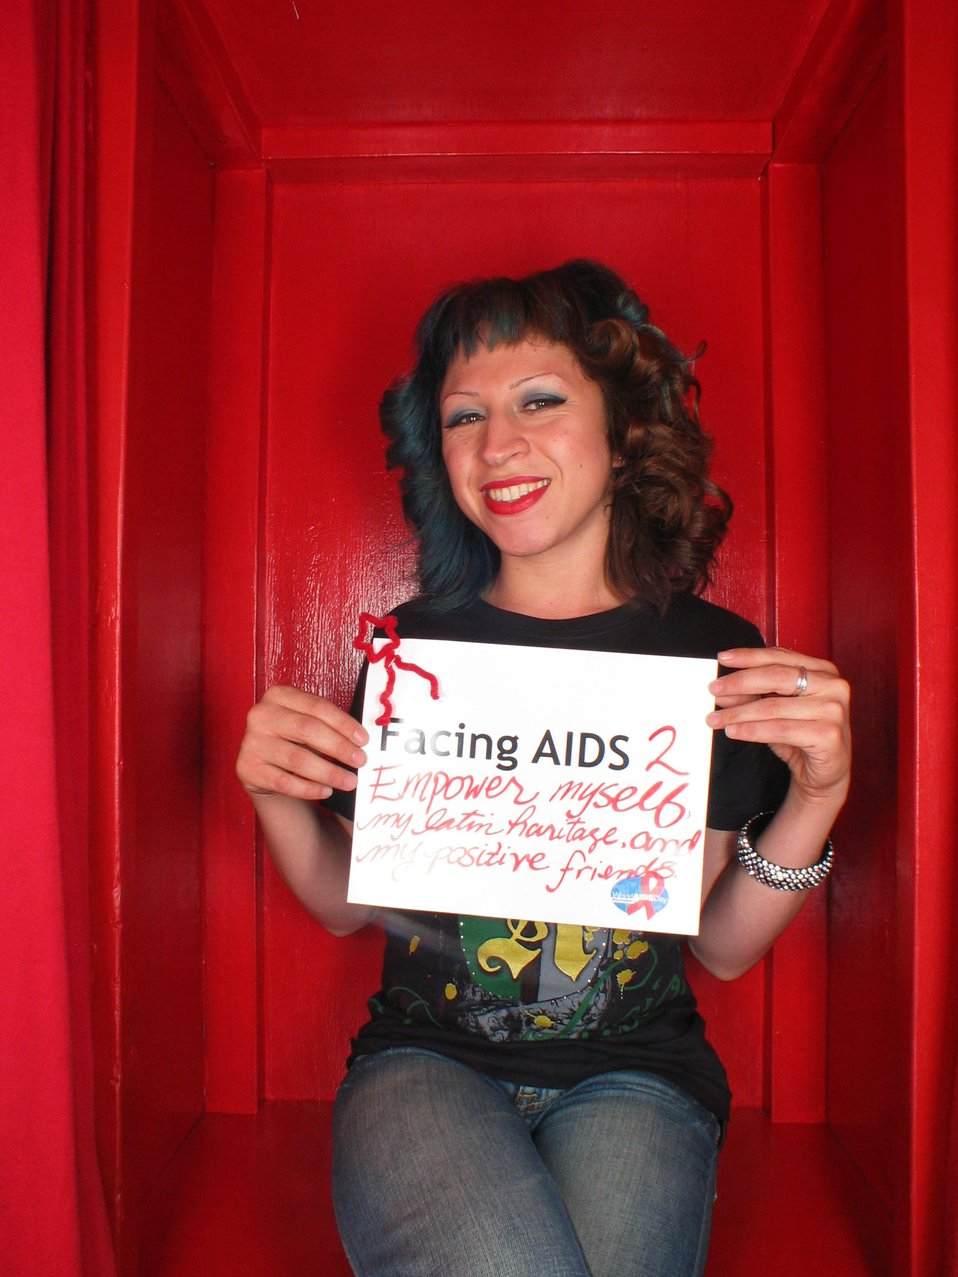 Facing AIDS 2 empower myself, my latin heritage and my positive friends.